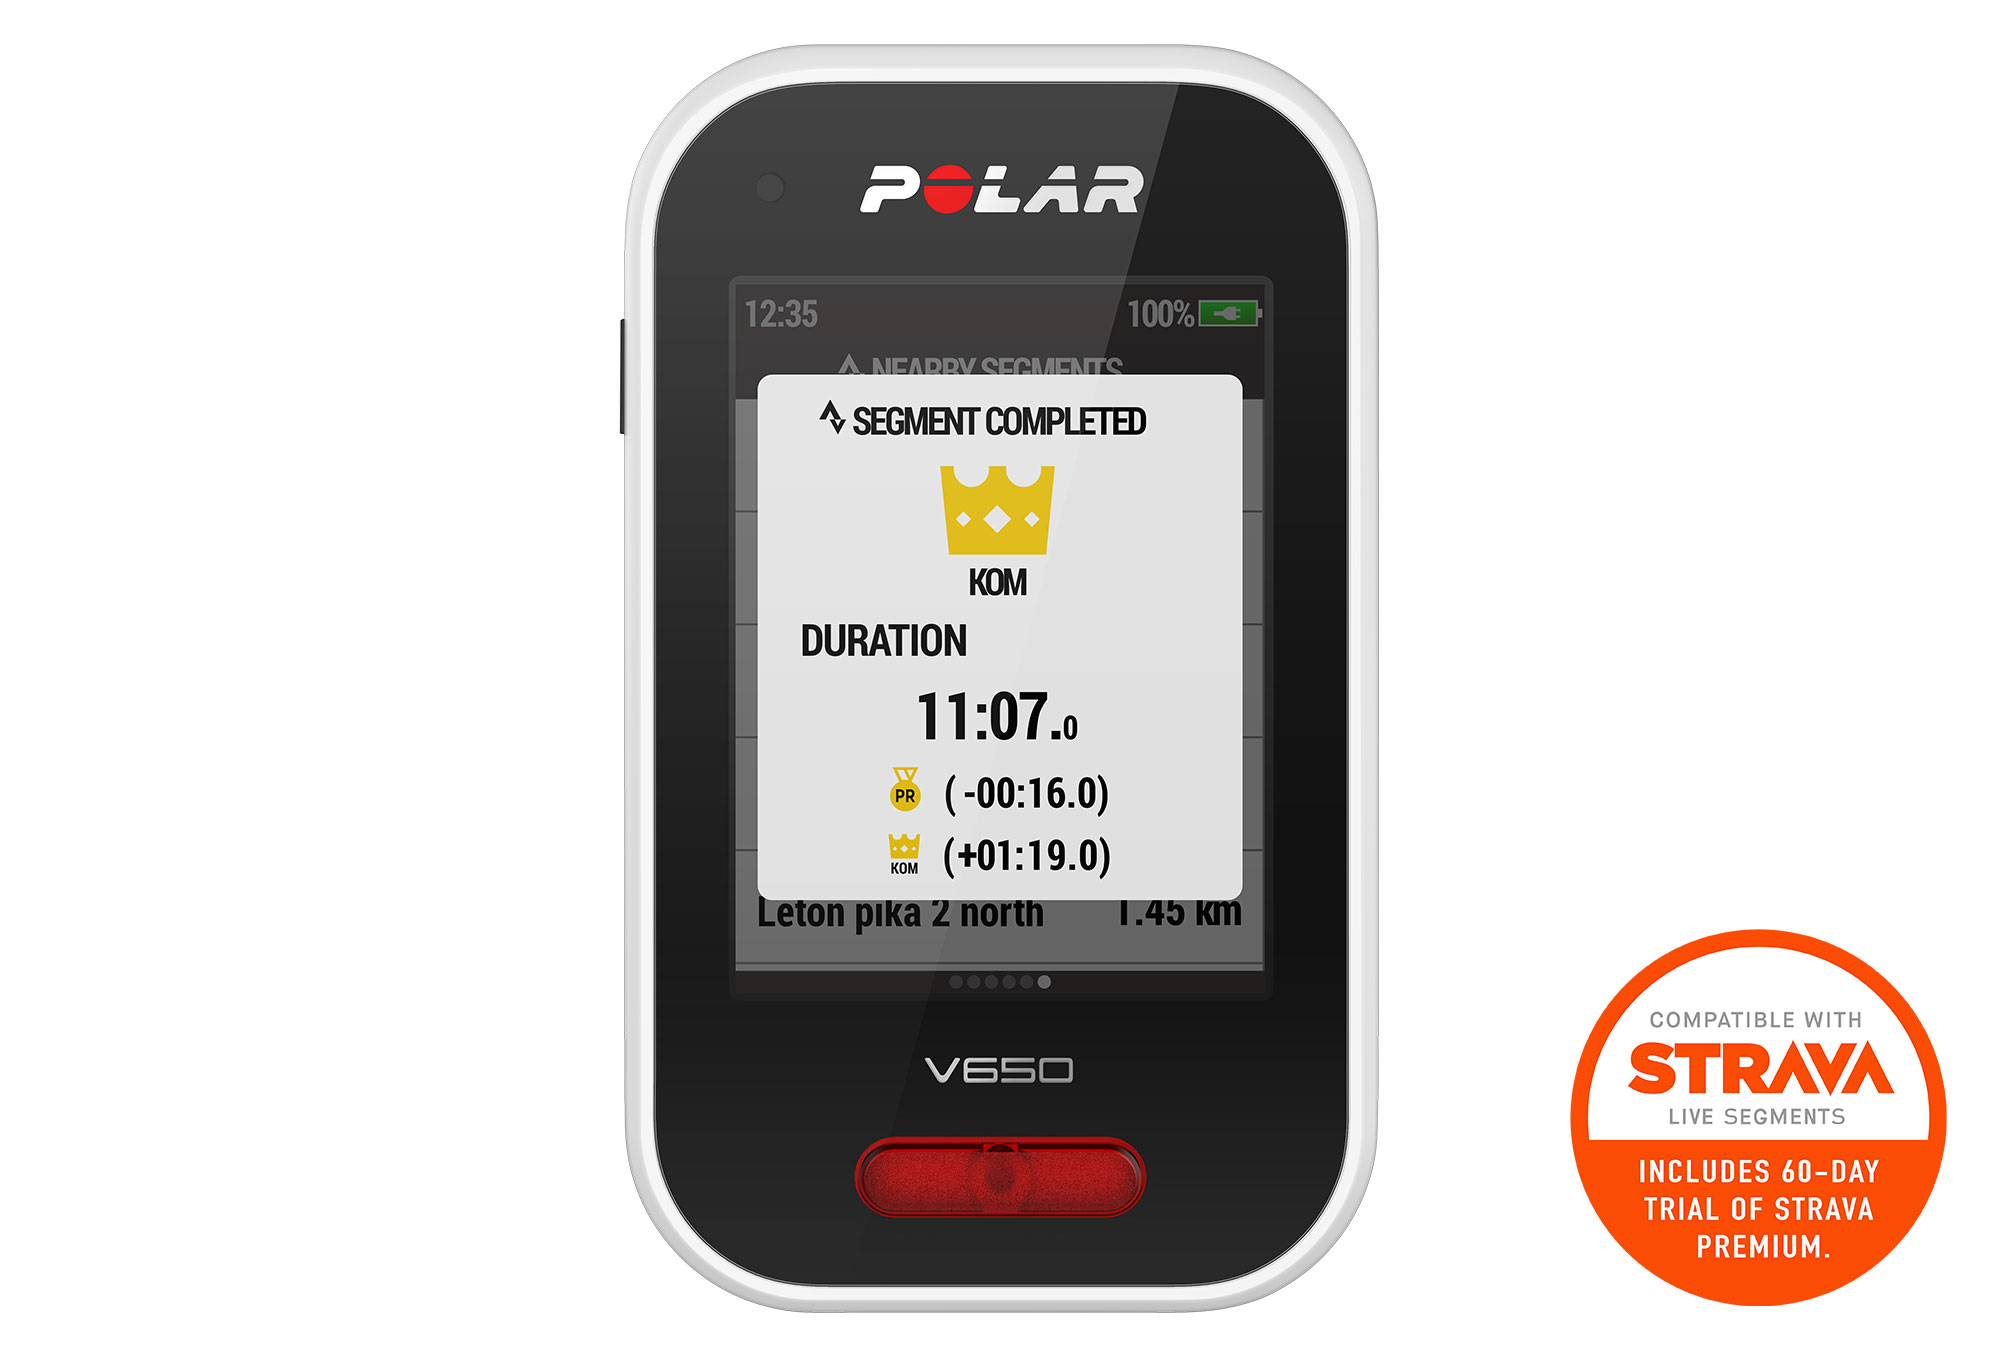 polar v650 compteur gps avec cartographie. Black Bedroom Furniture Sets. Home Design Ideas